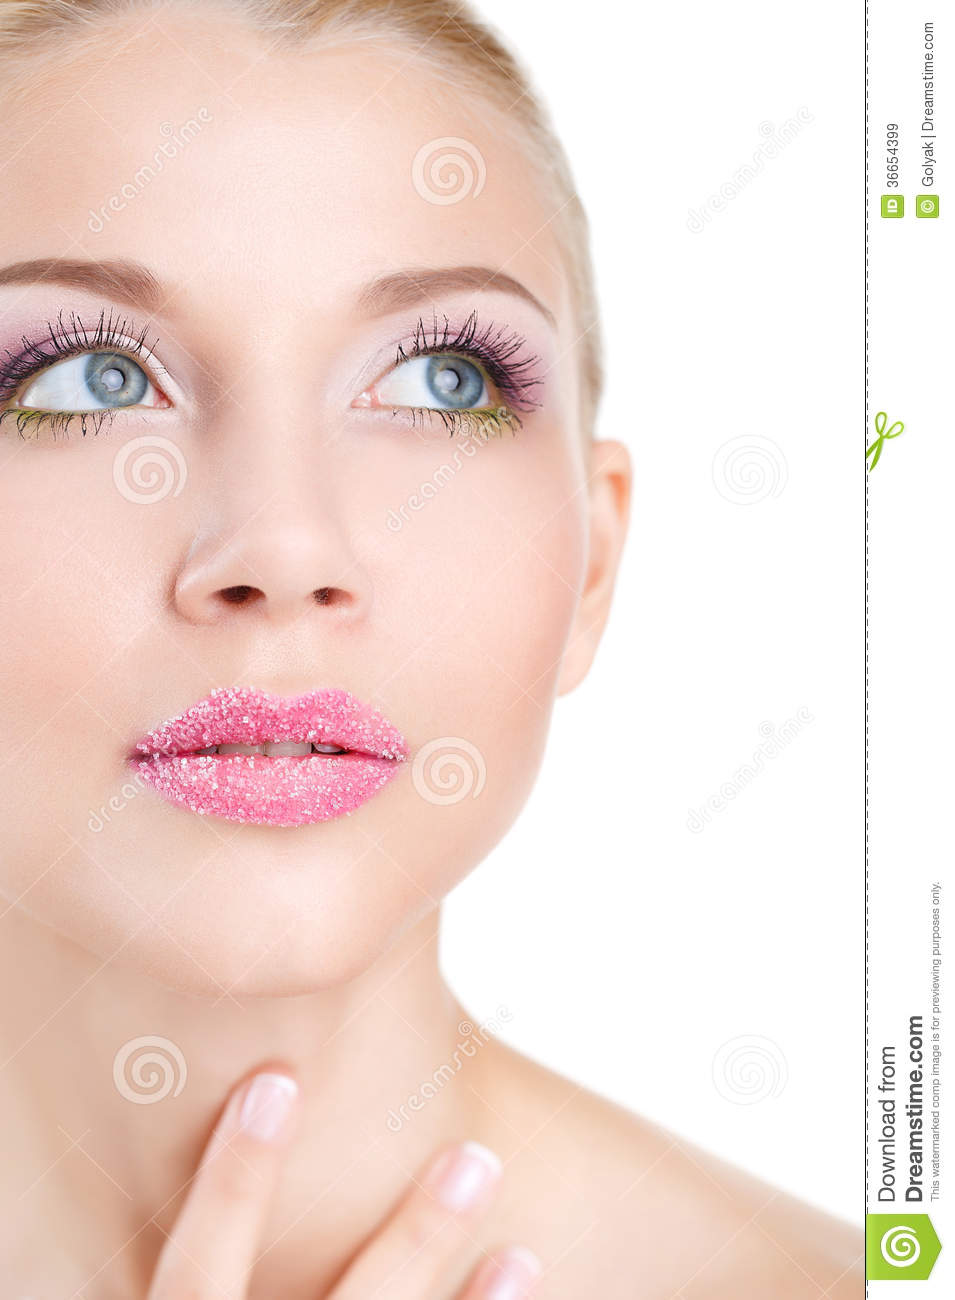 Skin Care, Make-up & Hair. Model Face With Make-up Stock ...